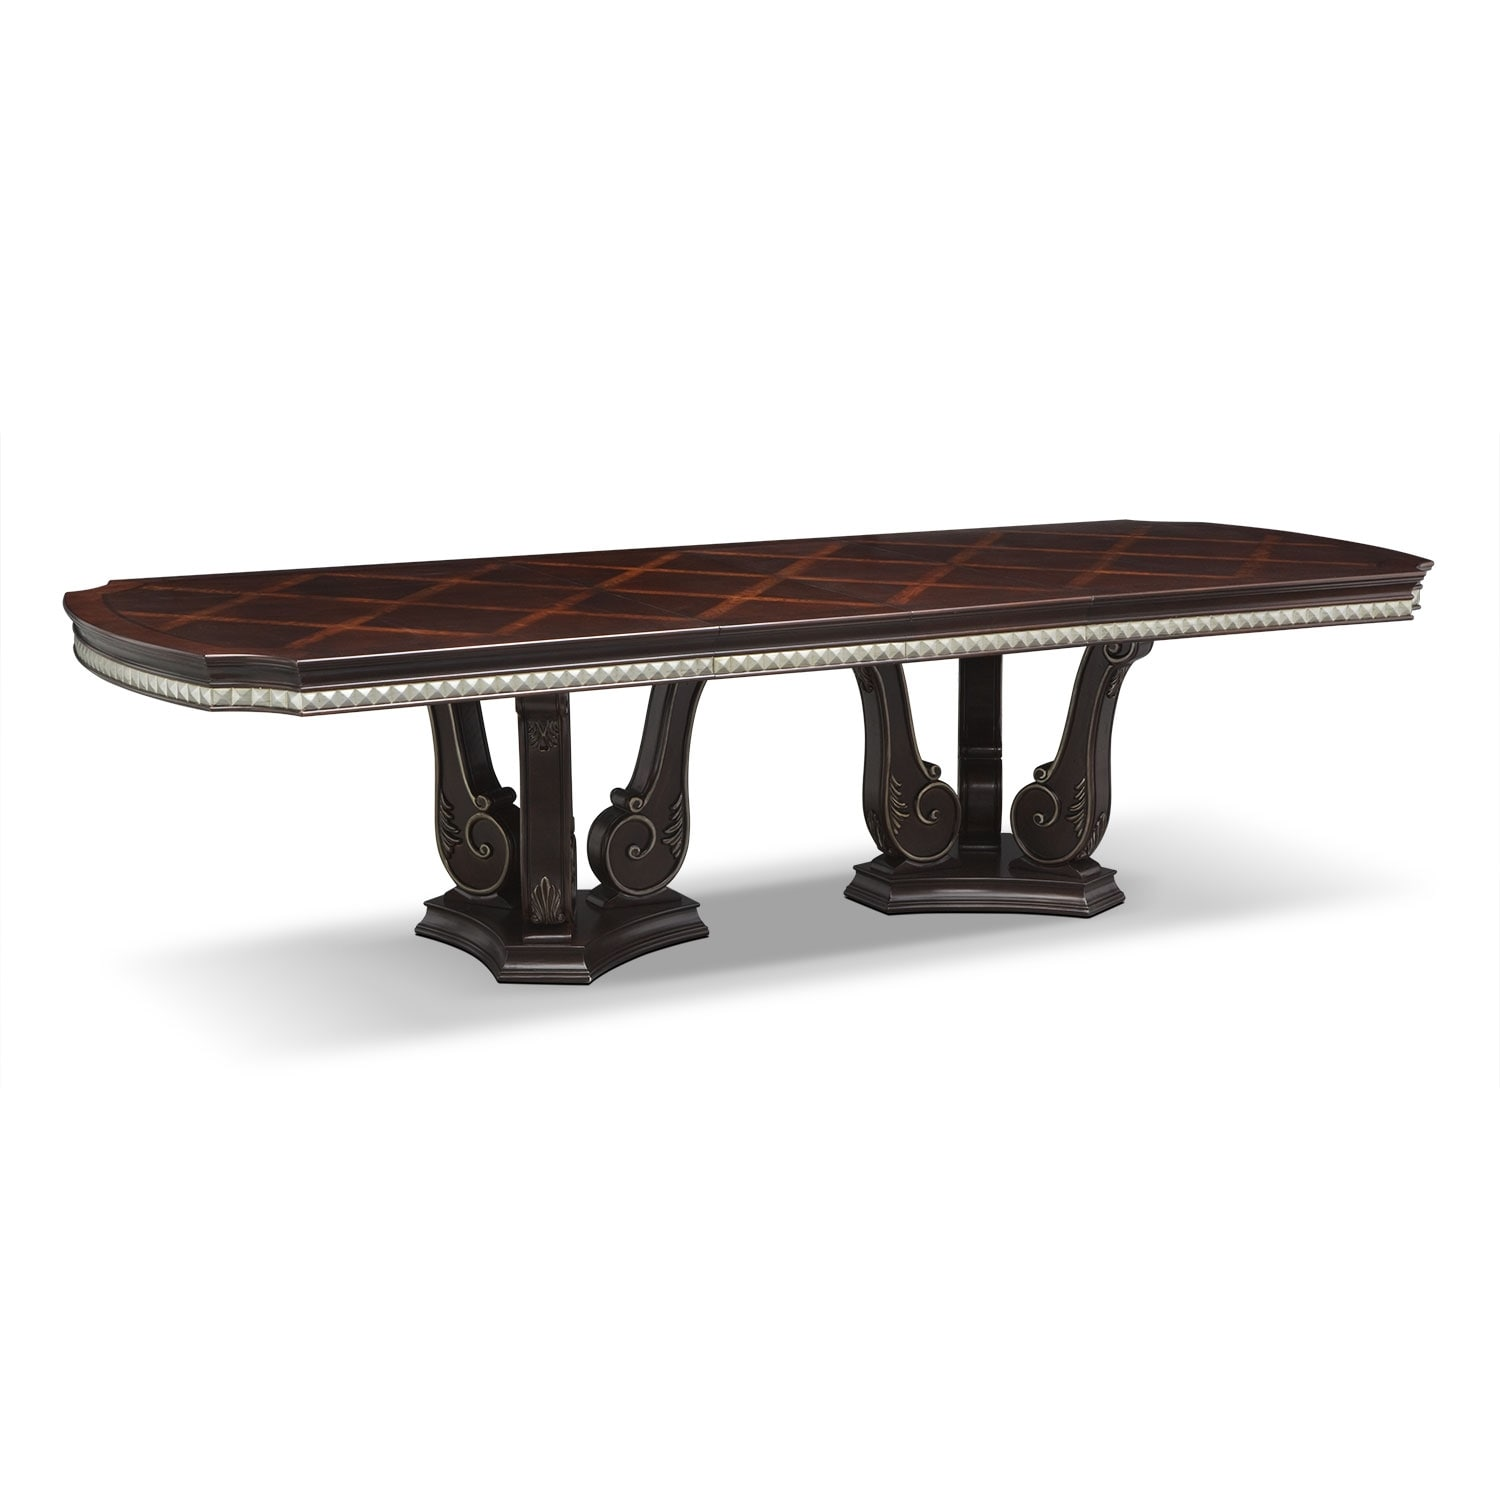 [Monte Cristo Dining Table]